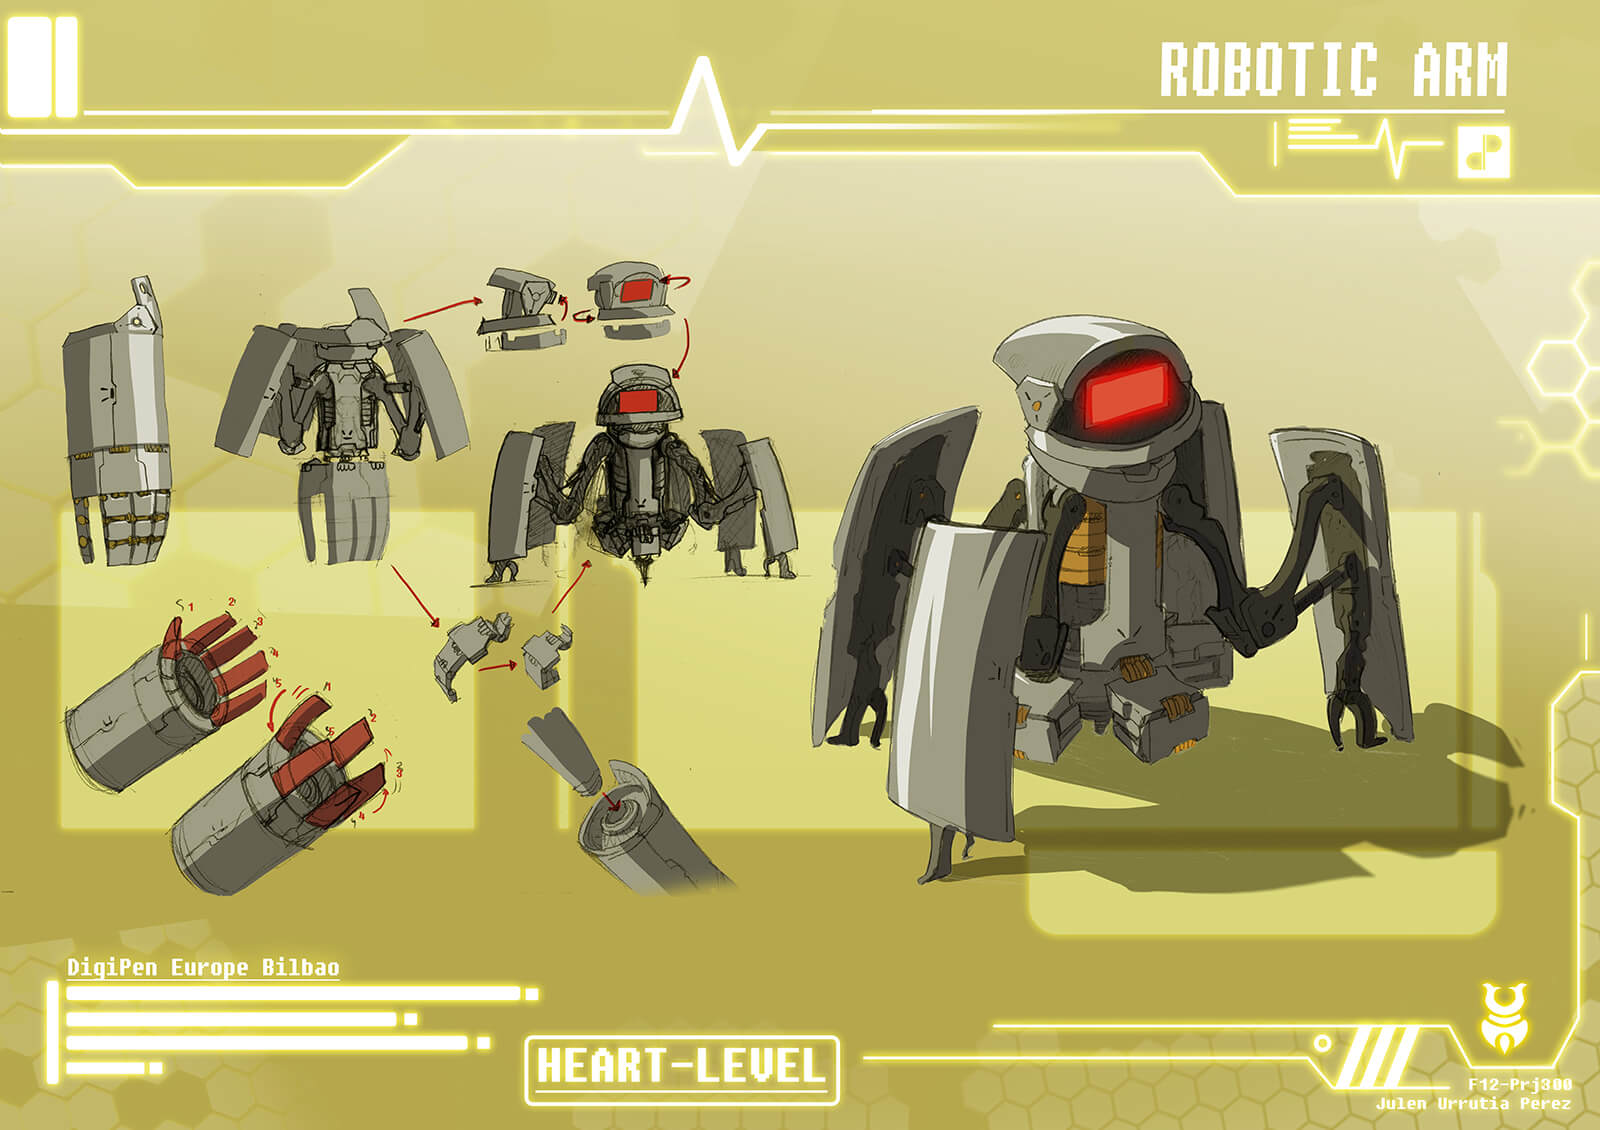 Concept paintings of metallic arm armor from the film Heart Level as it deploys into a short, red-faced robot